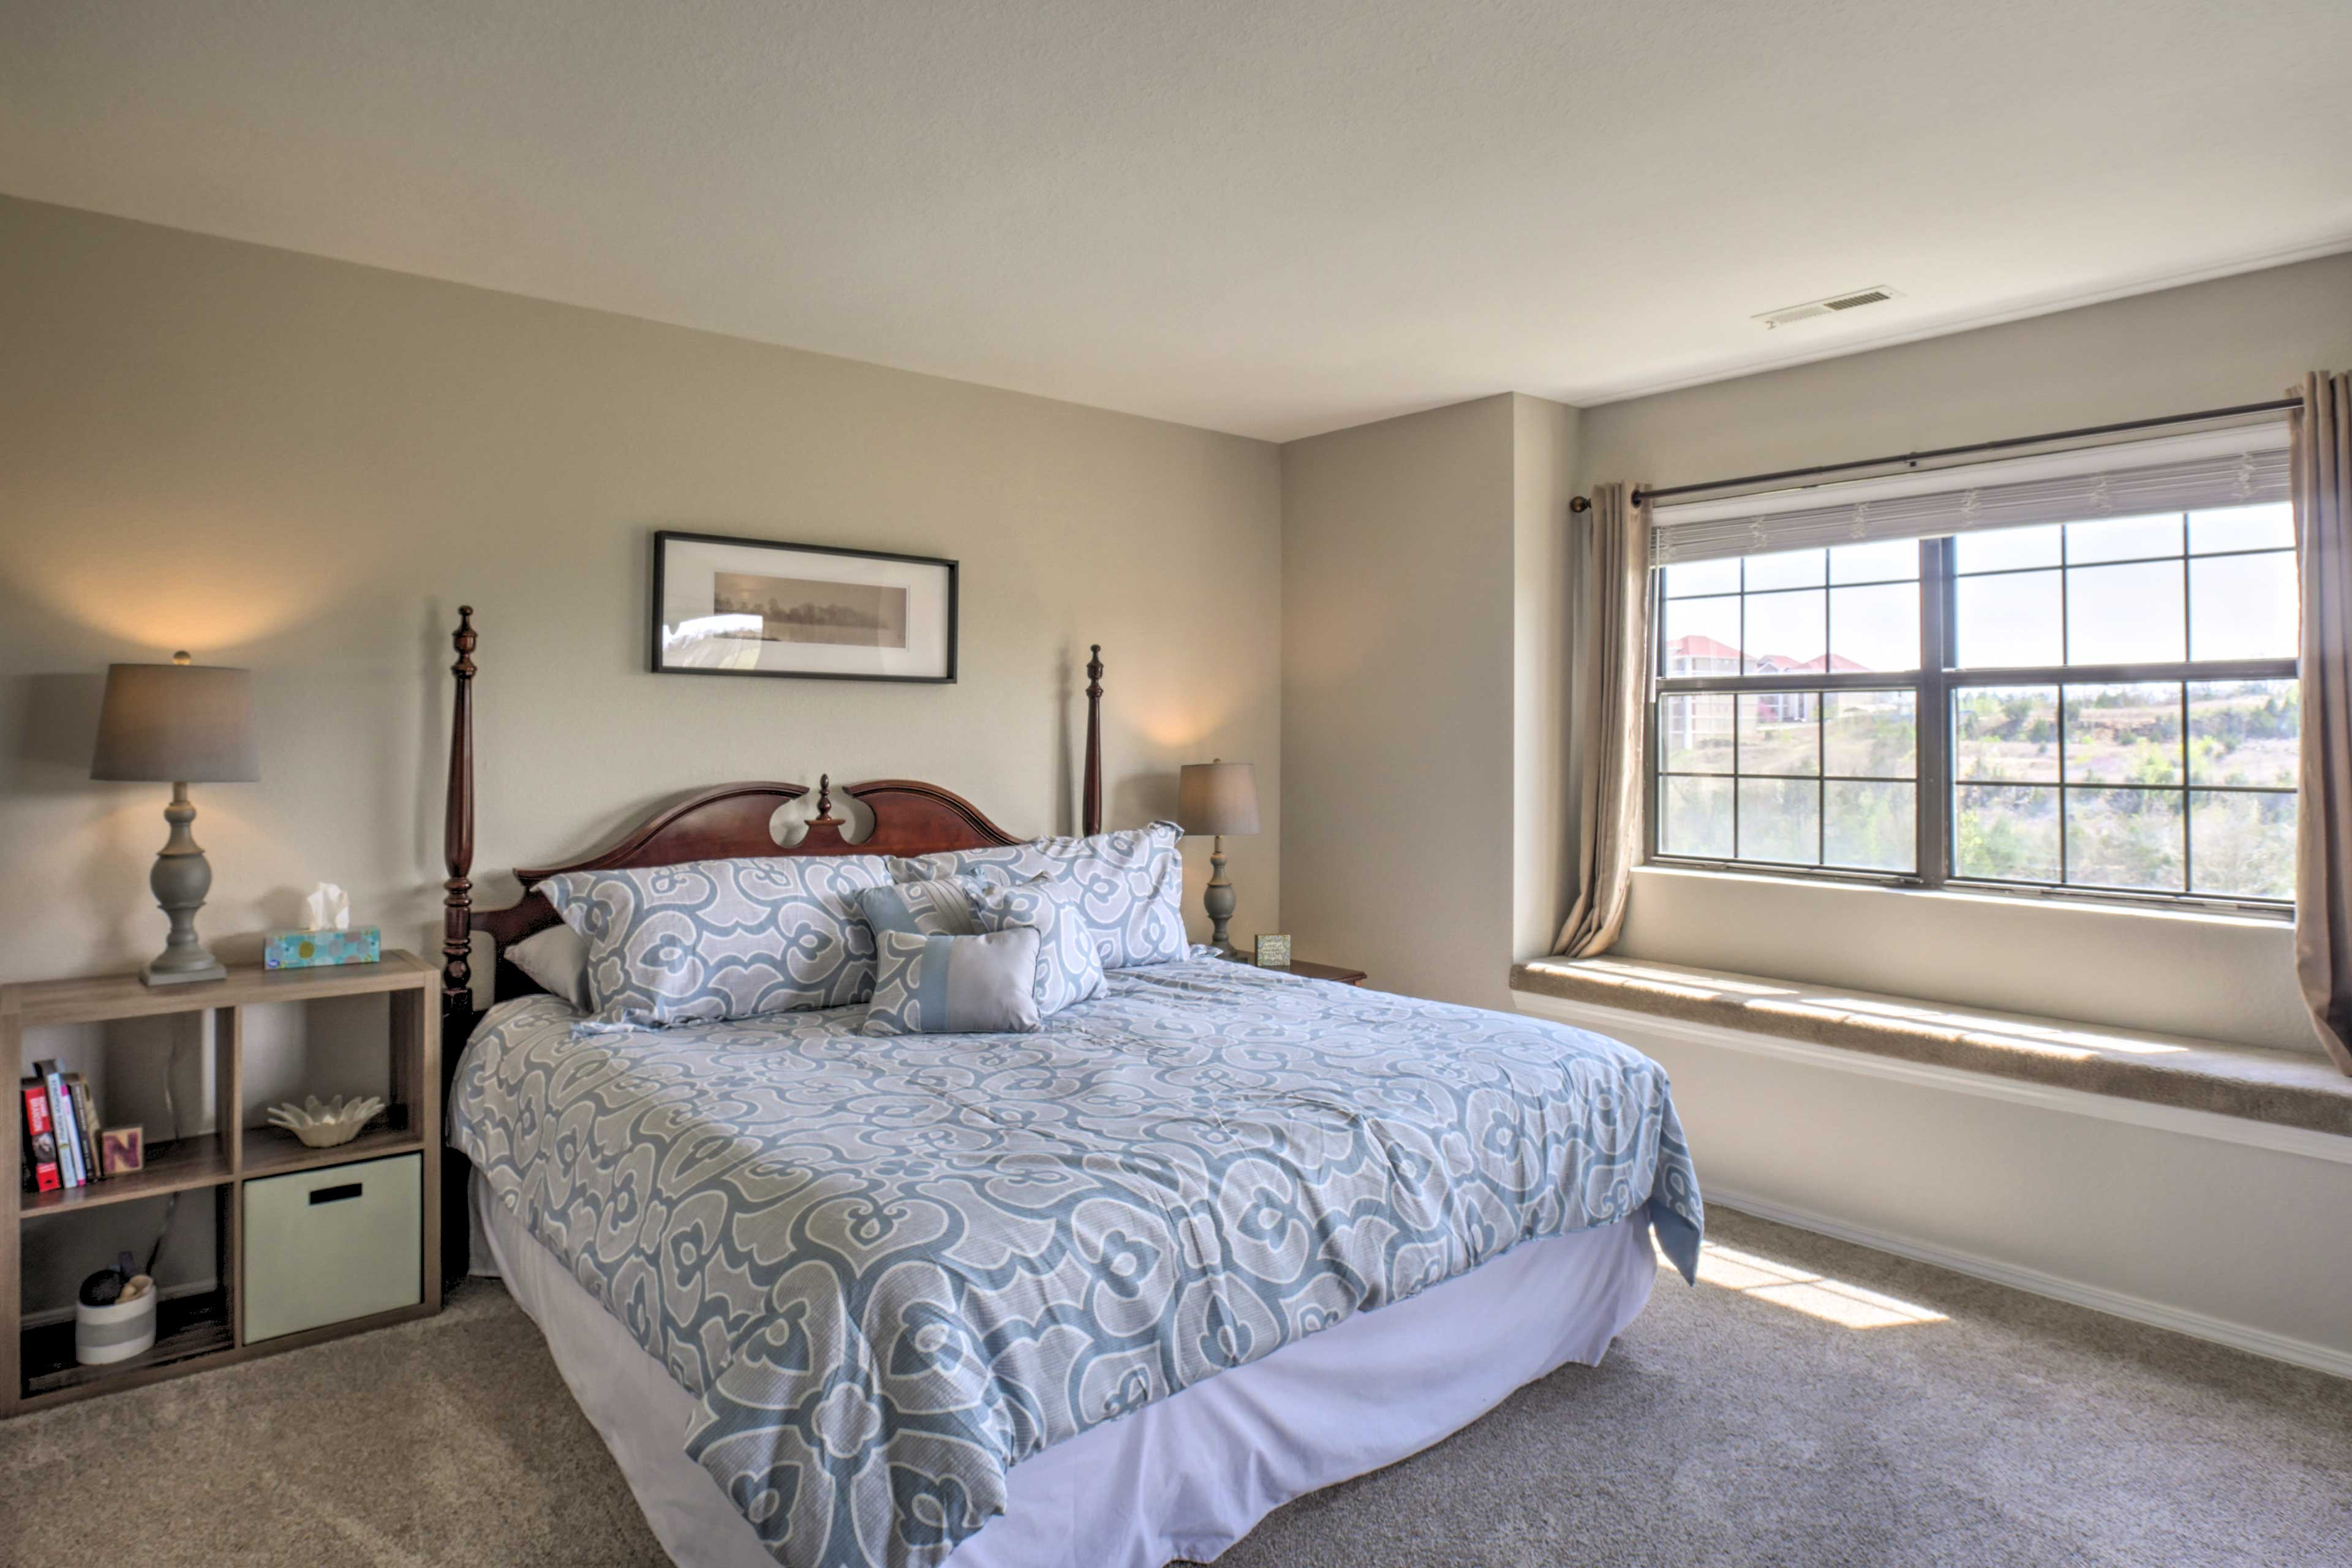 Rest your head on the king bed in the master bedroom.